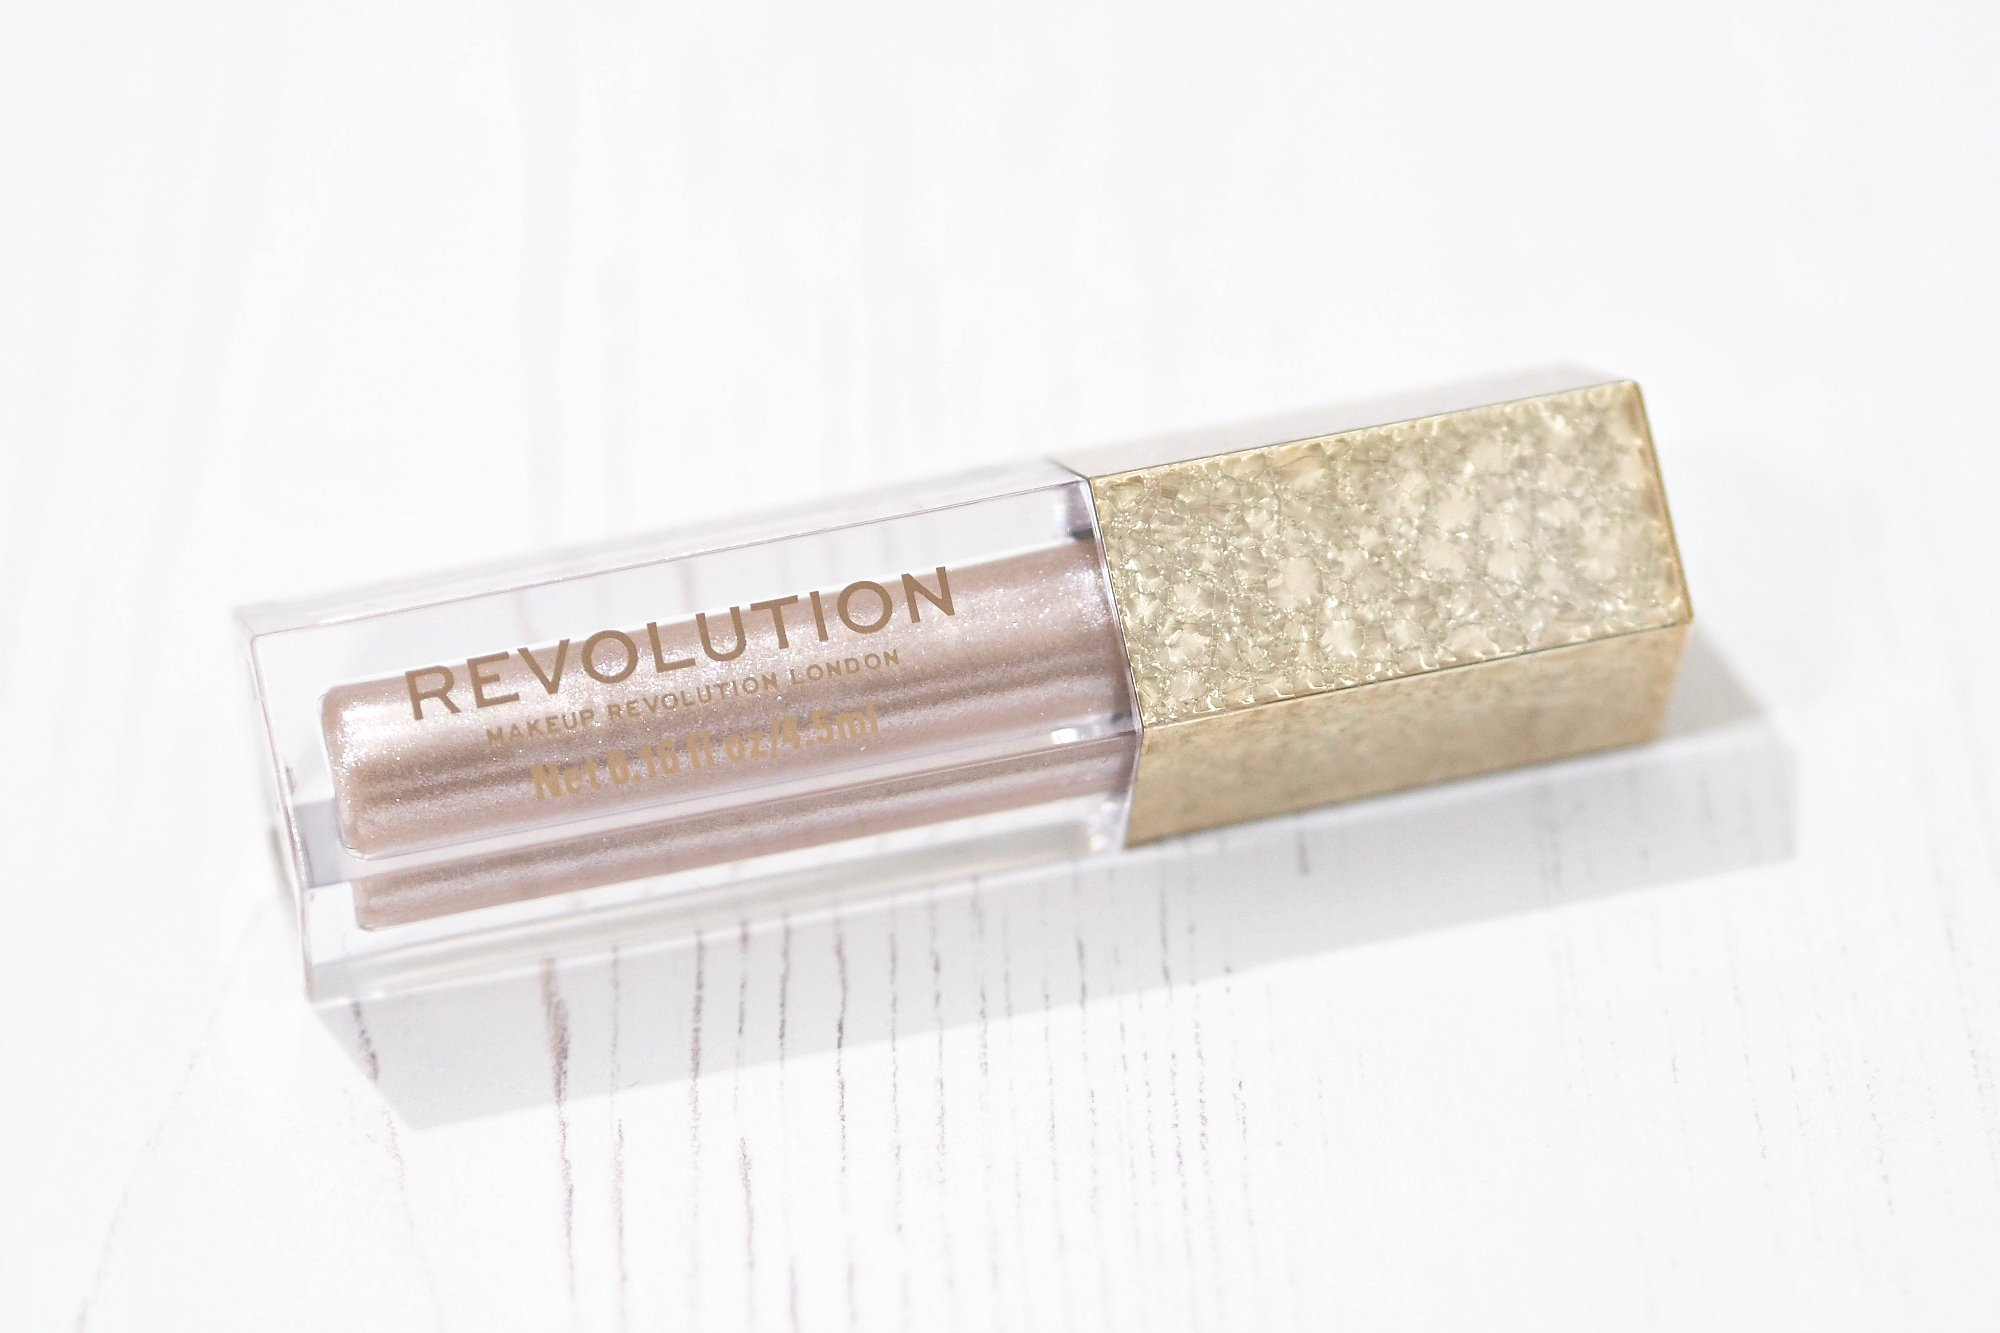 Revolution Jewel Collection Lip Topper Review and Swatches in the shade Exquisite